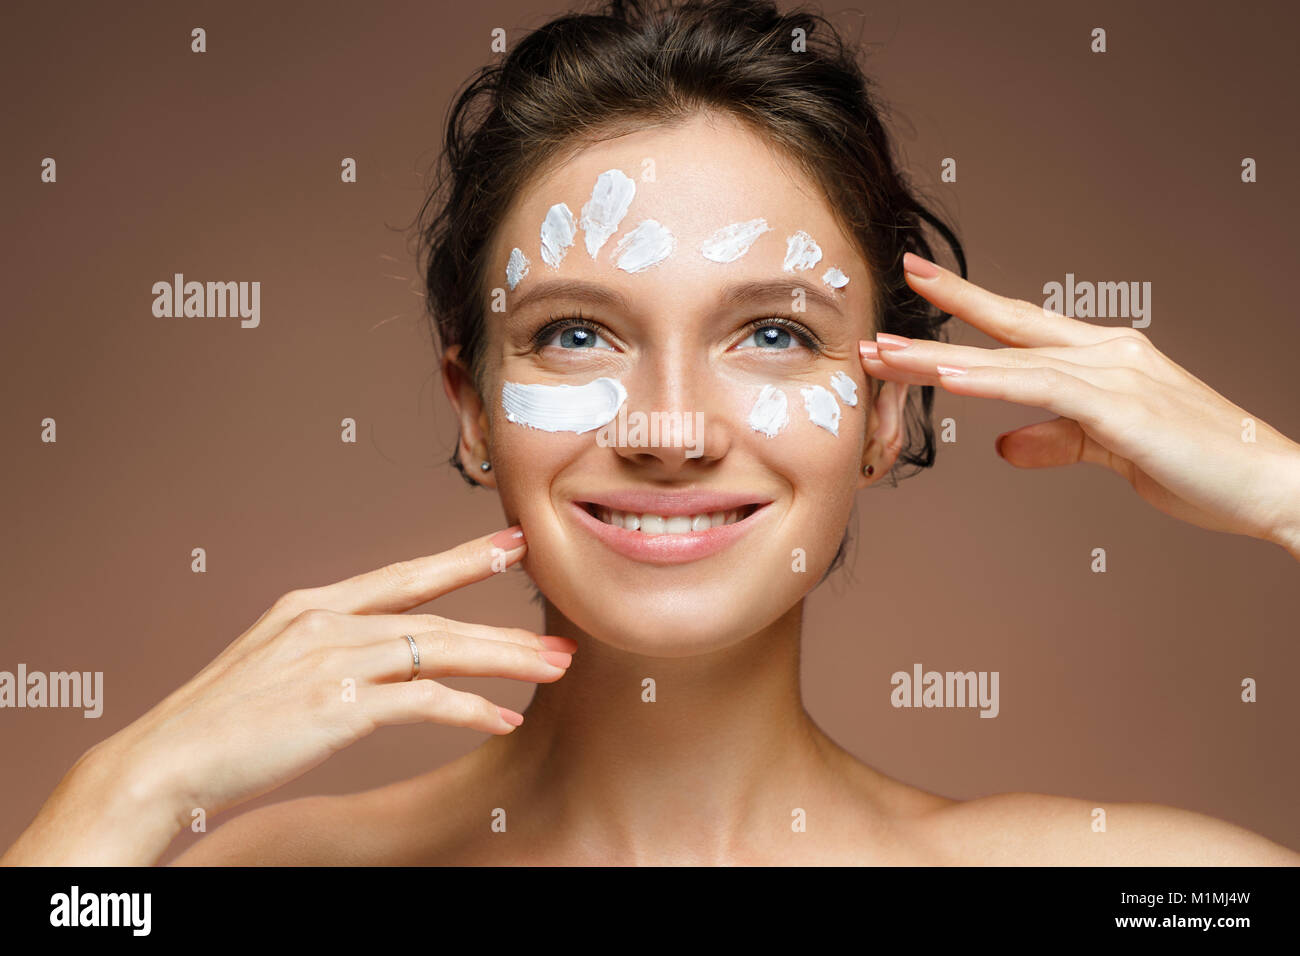 Young woman with moisturizing cream. Photo of beautiful brunette woman touching her face on brown background. Skin - Stock Image